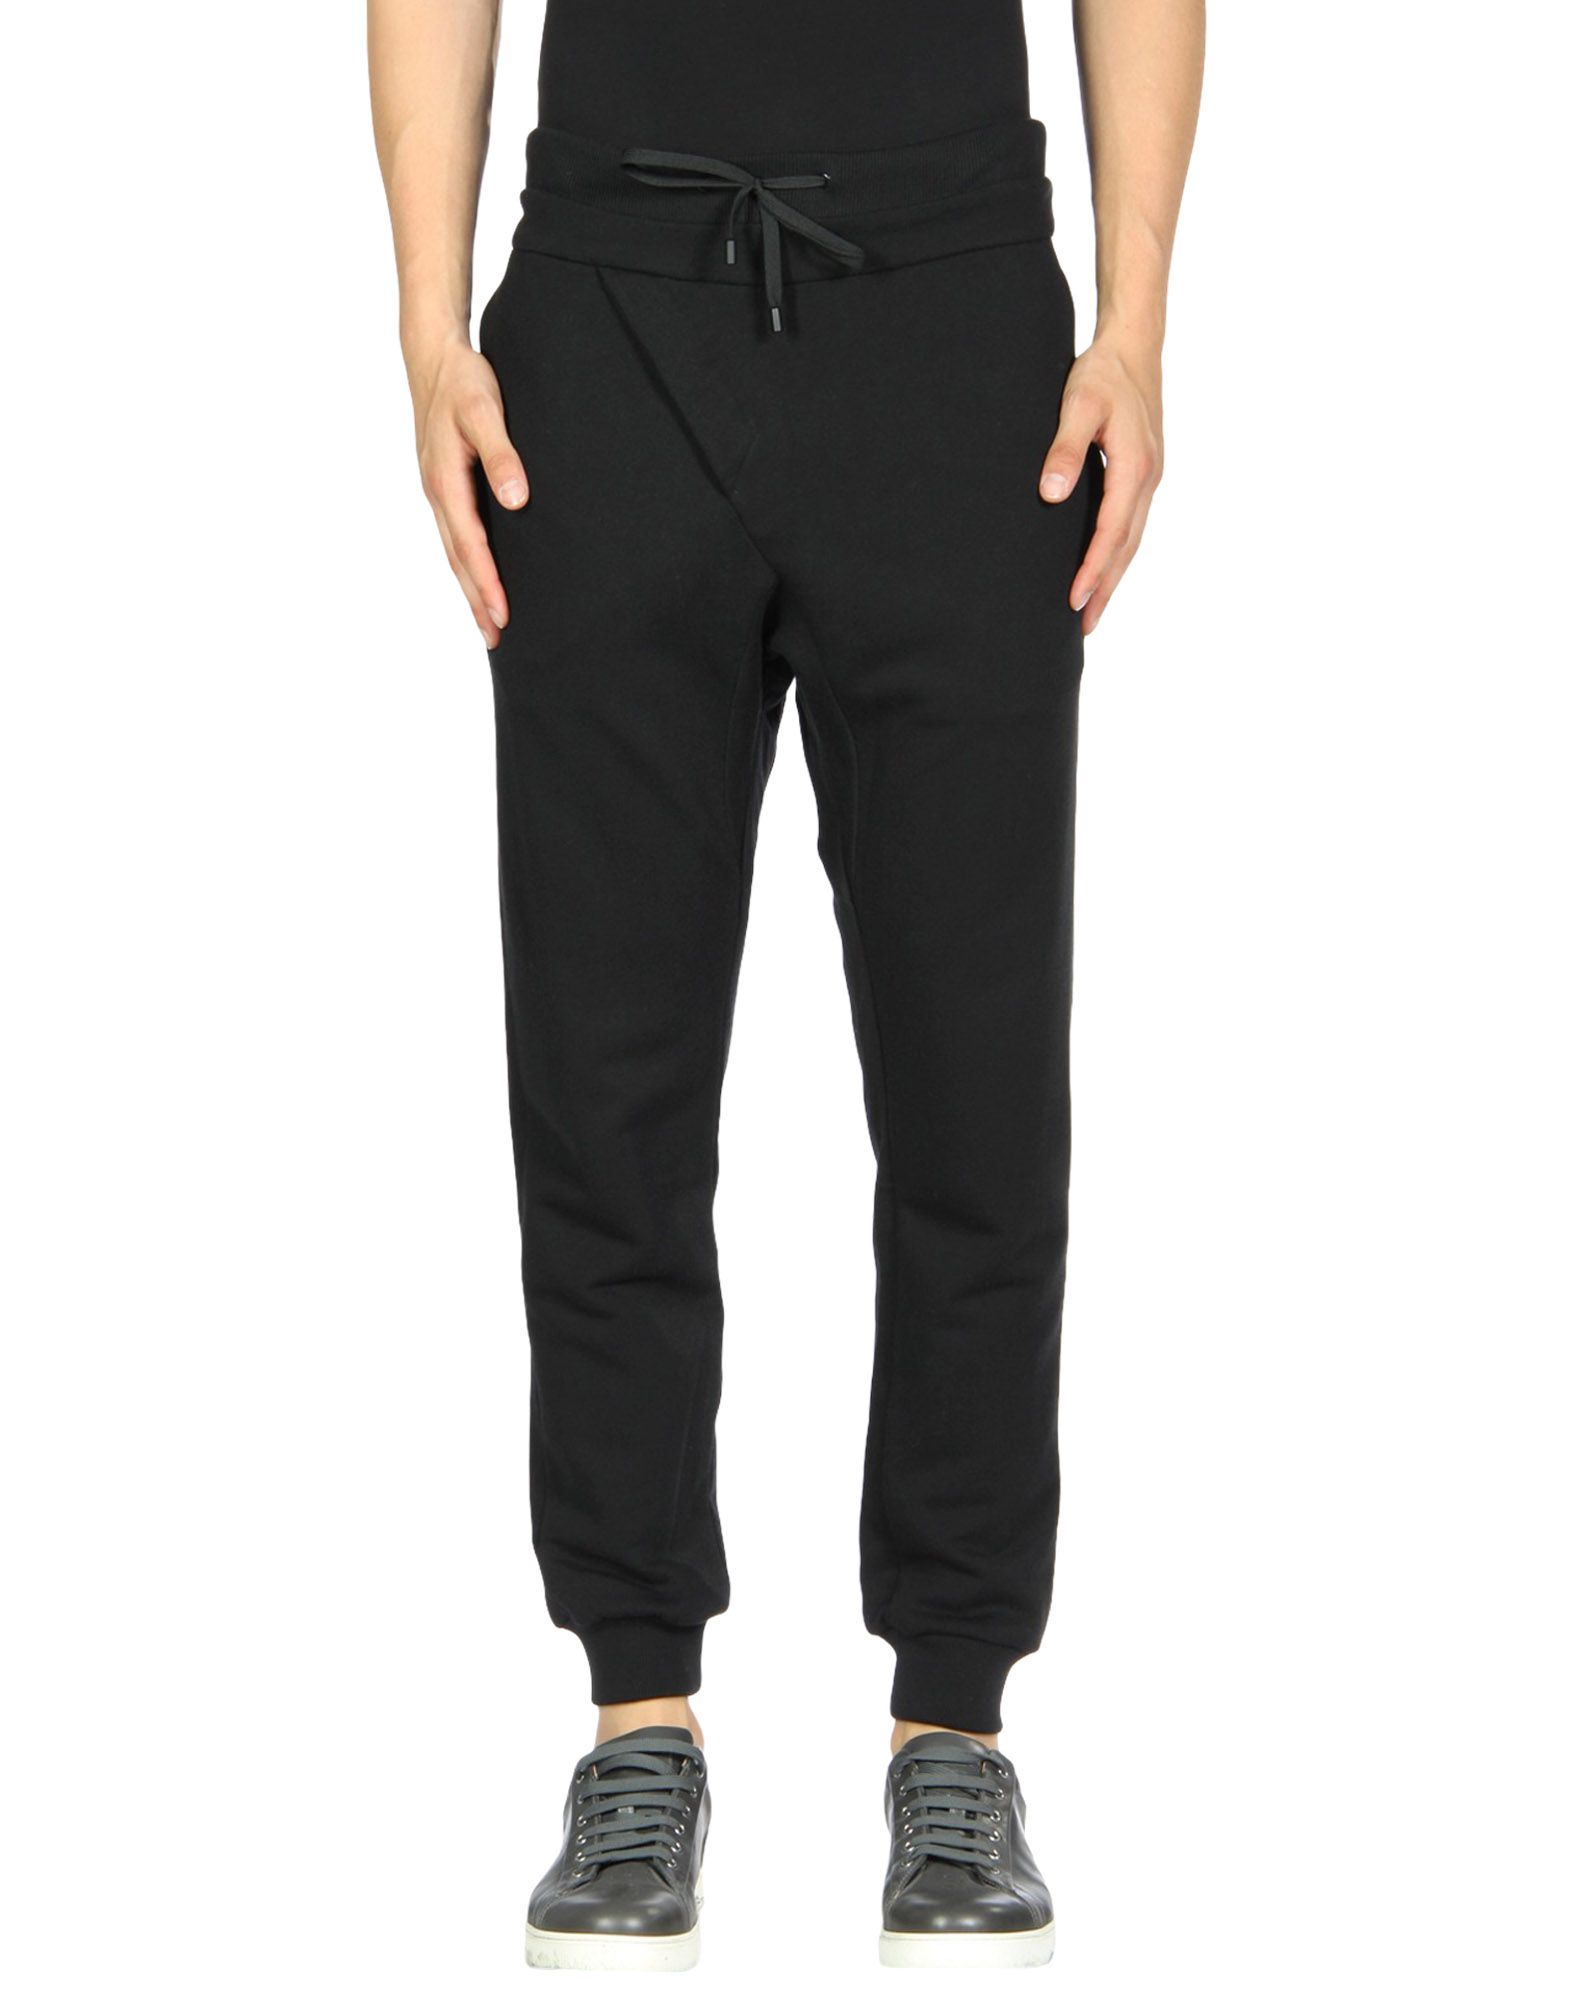 'Public School Casual Pants